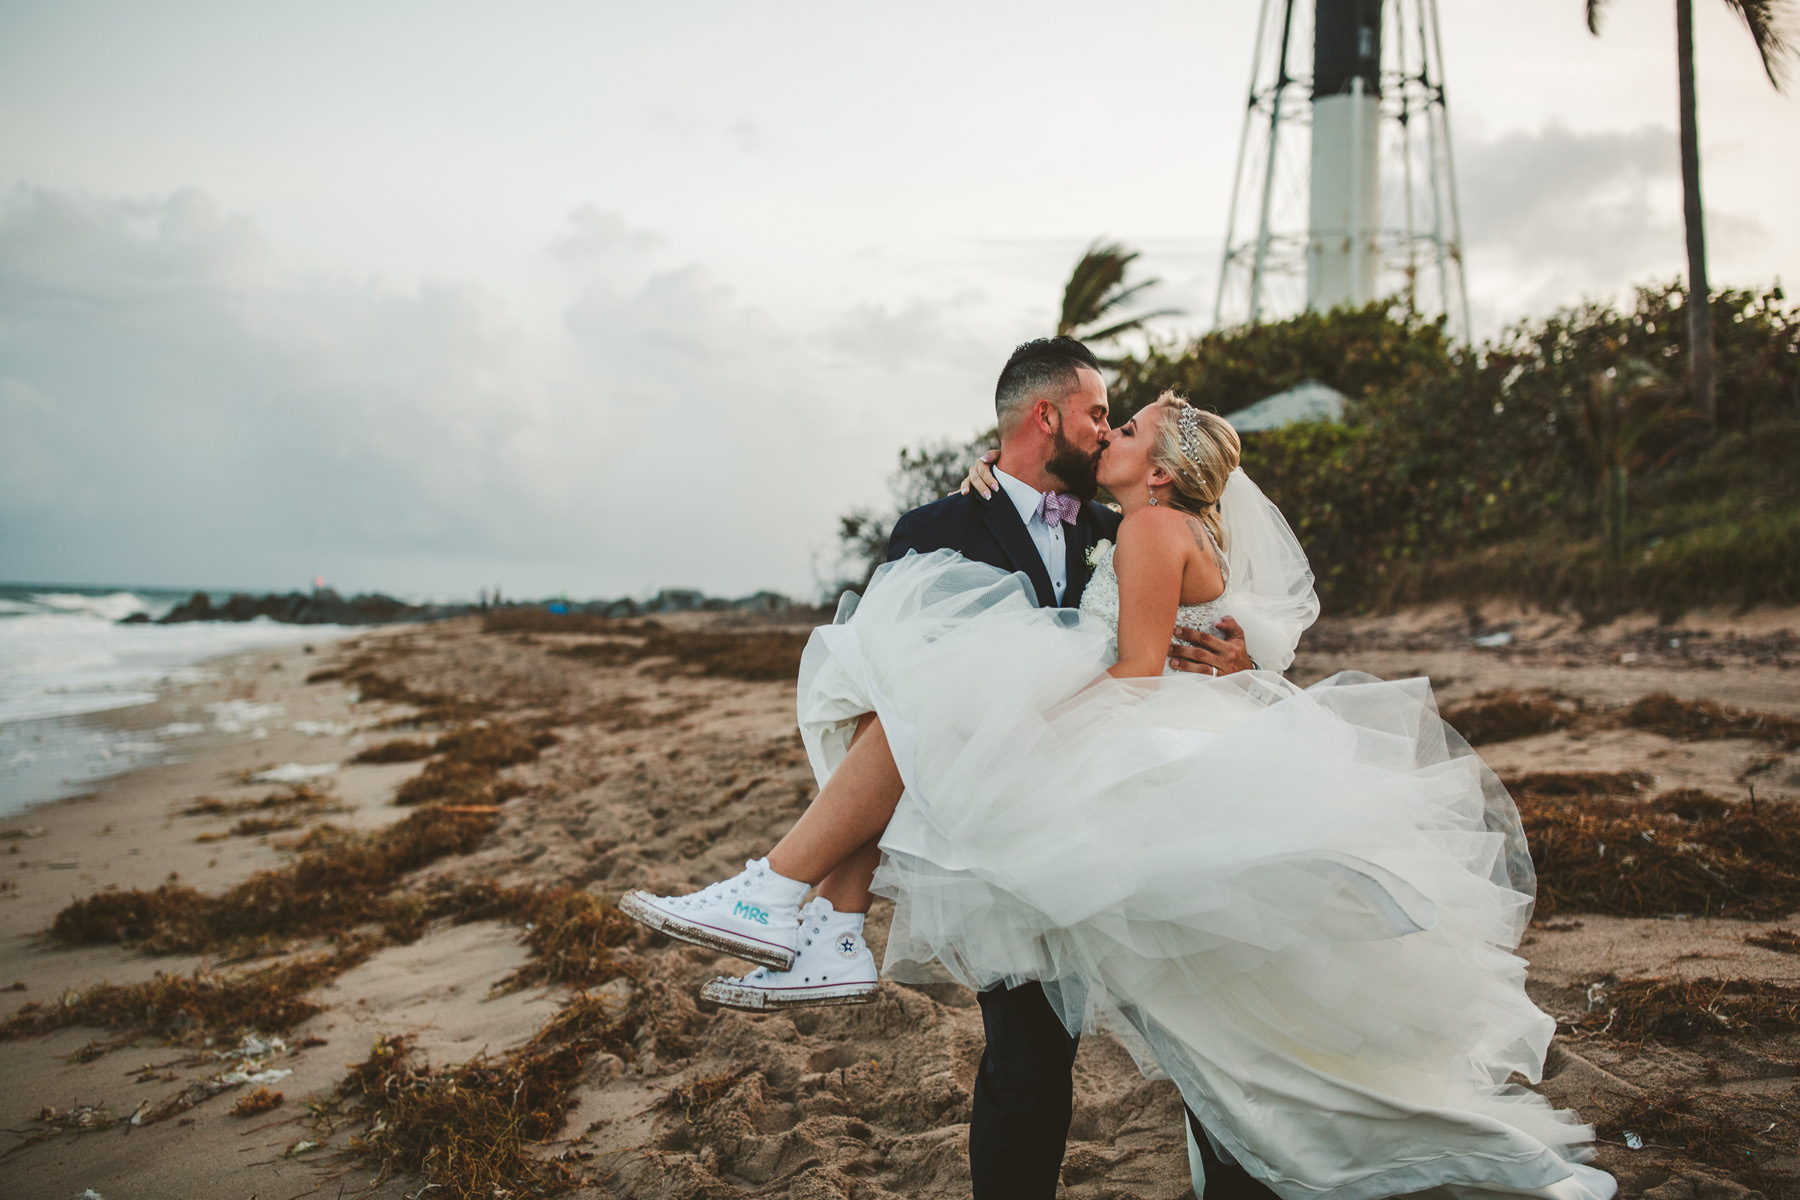 emotional-couple-portraits-beach-wedding-tiny-house-photo.jpg